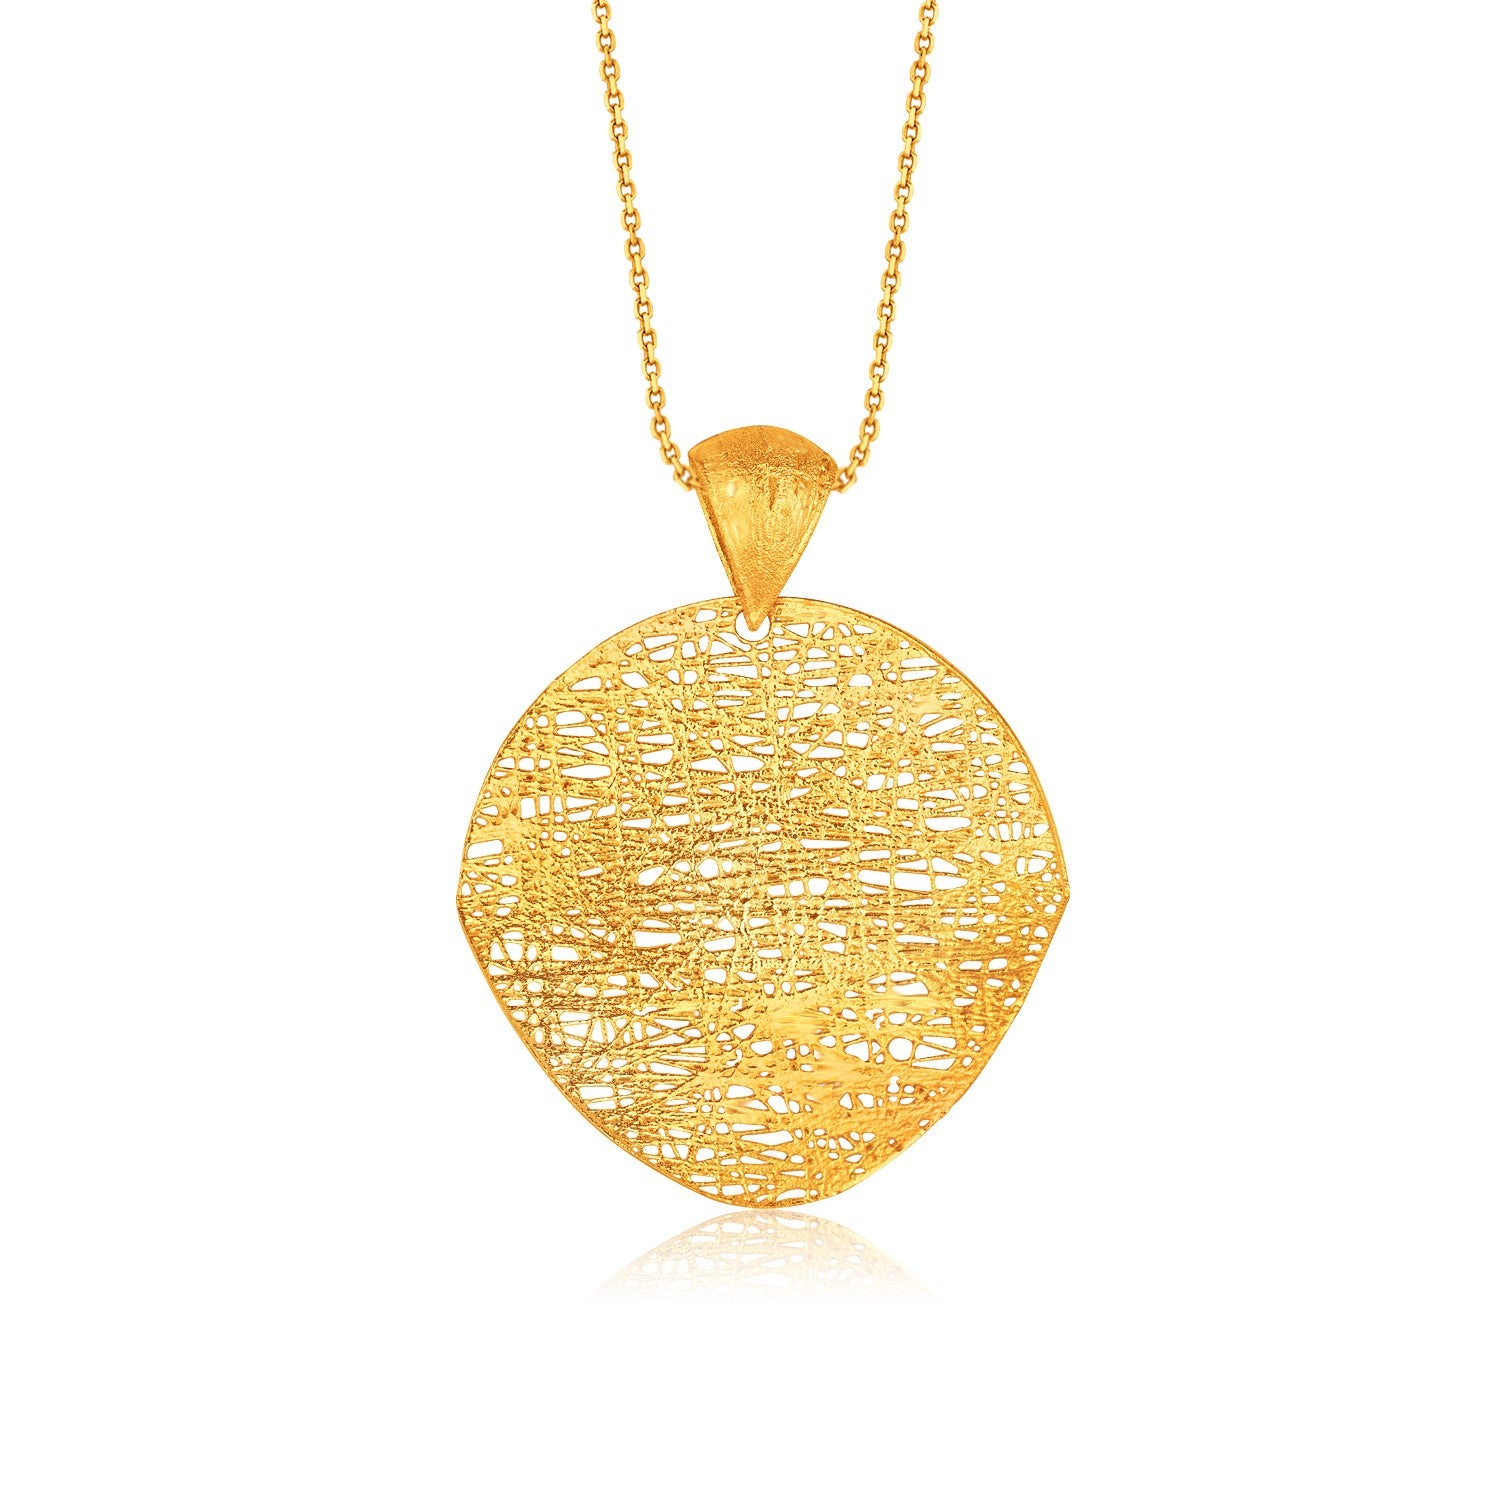 Original New York Style  Italian Design 14K Yellow Gold Woven Artistic Pendant